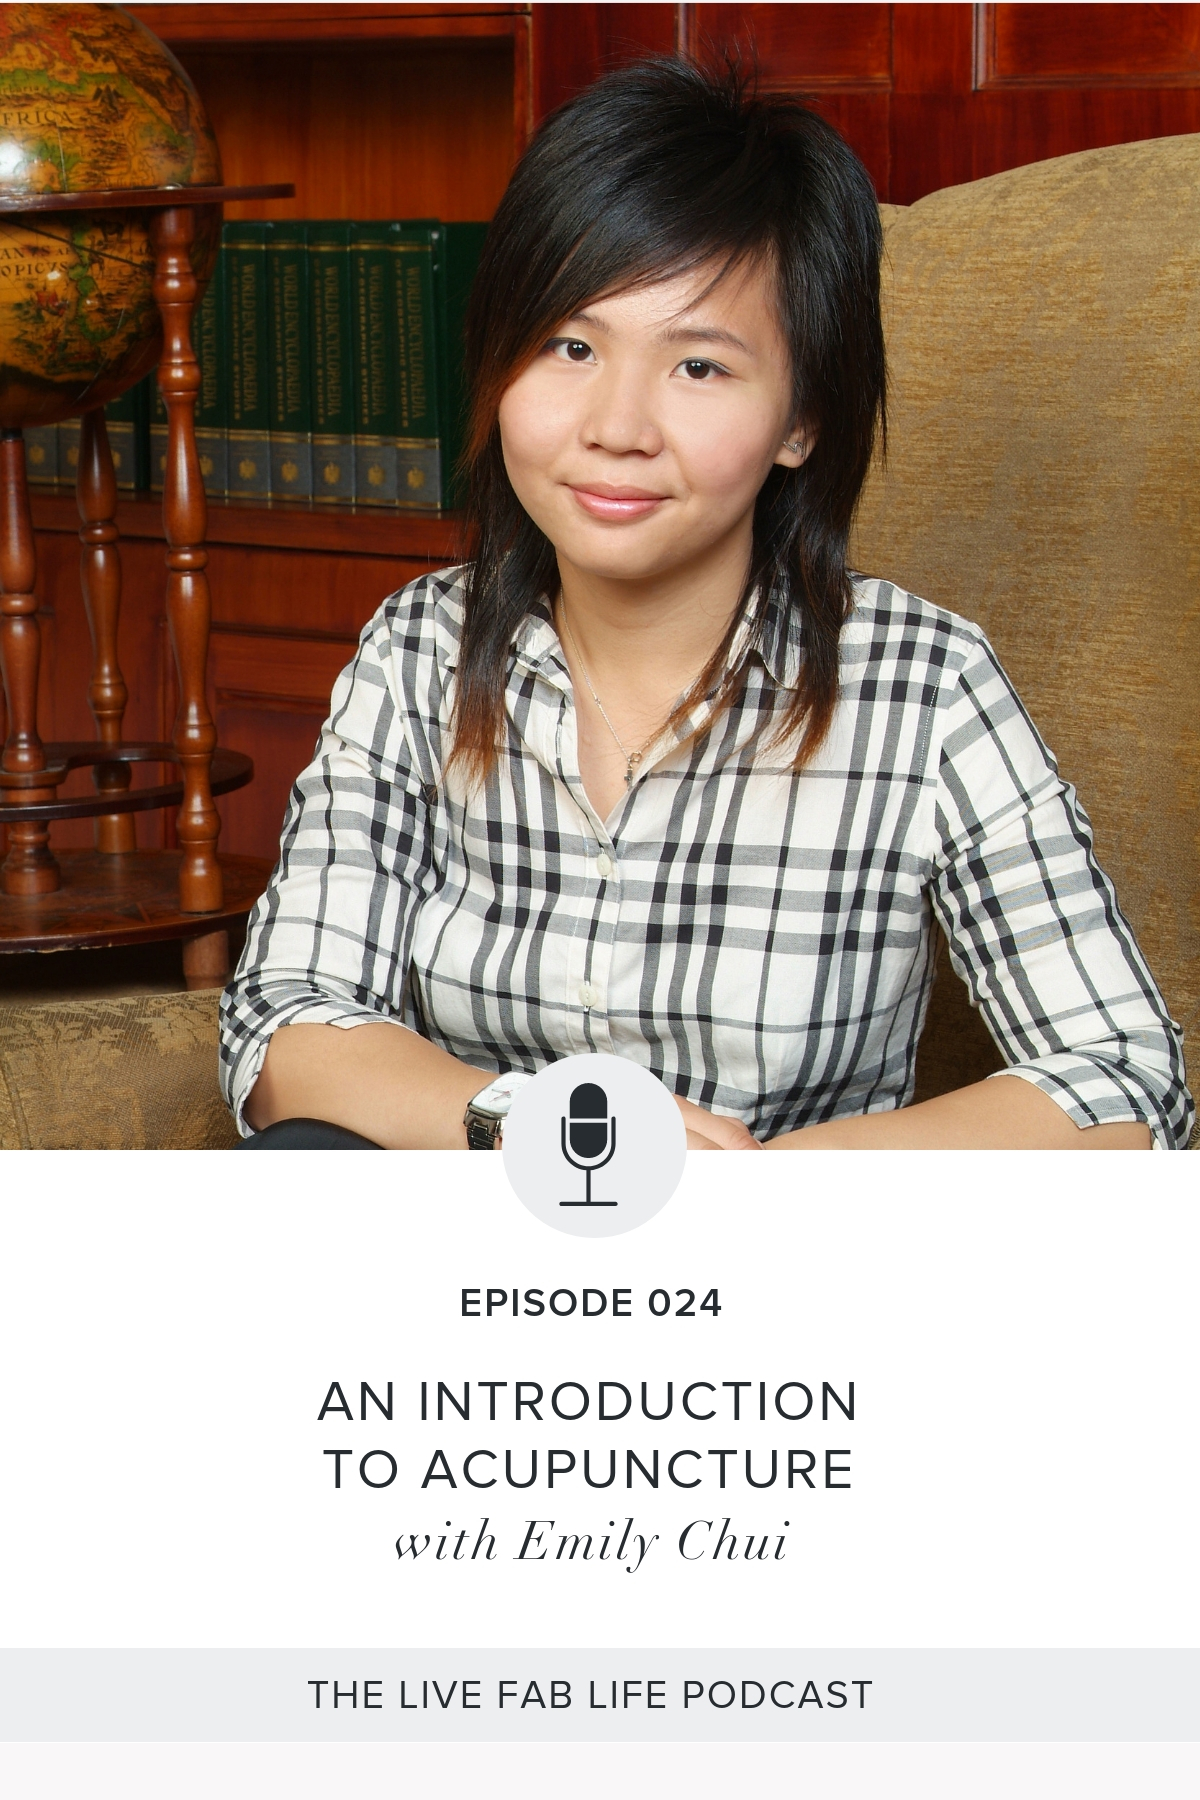 Episode 024: An Introduction to Acupuncture with Emily Chui